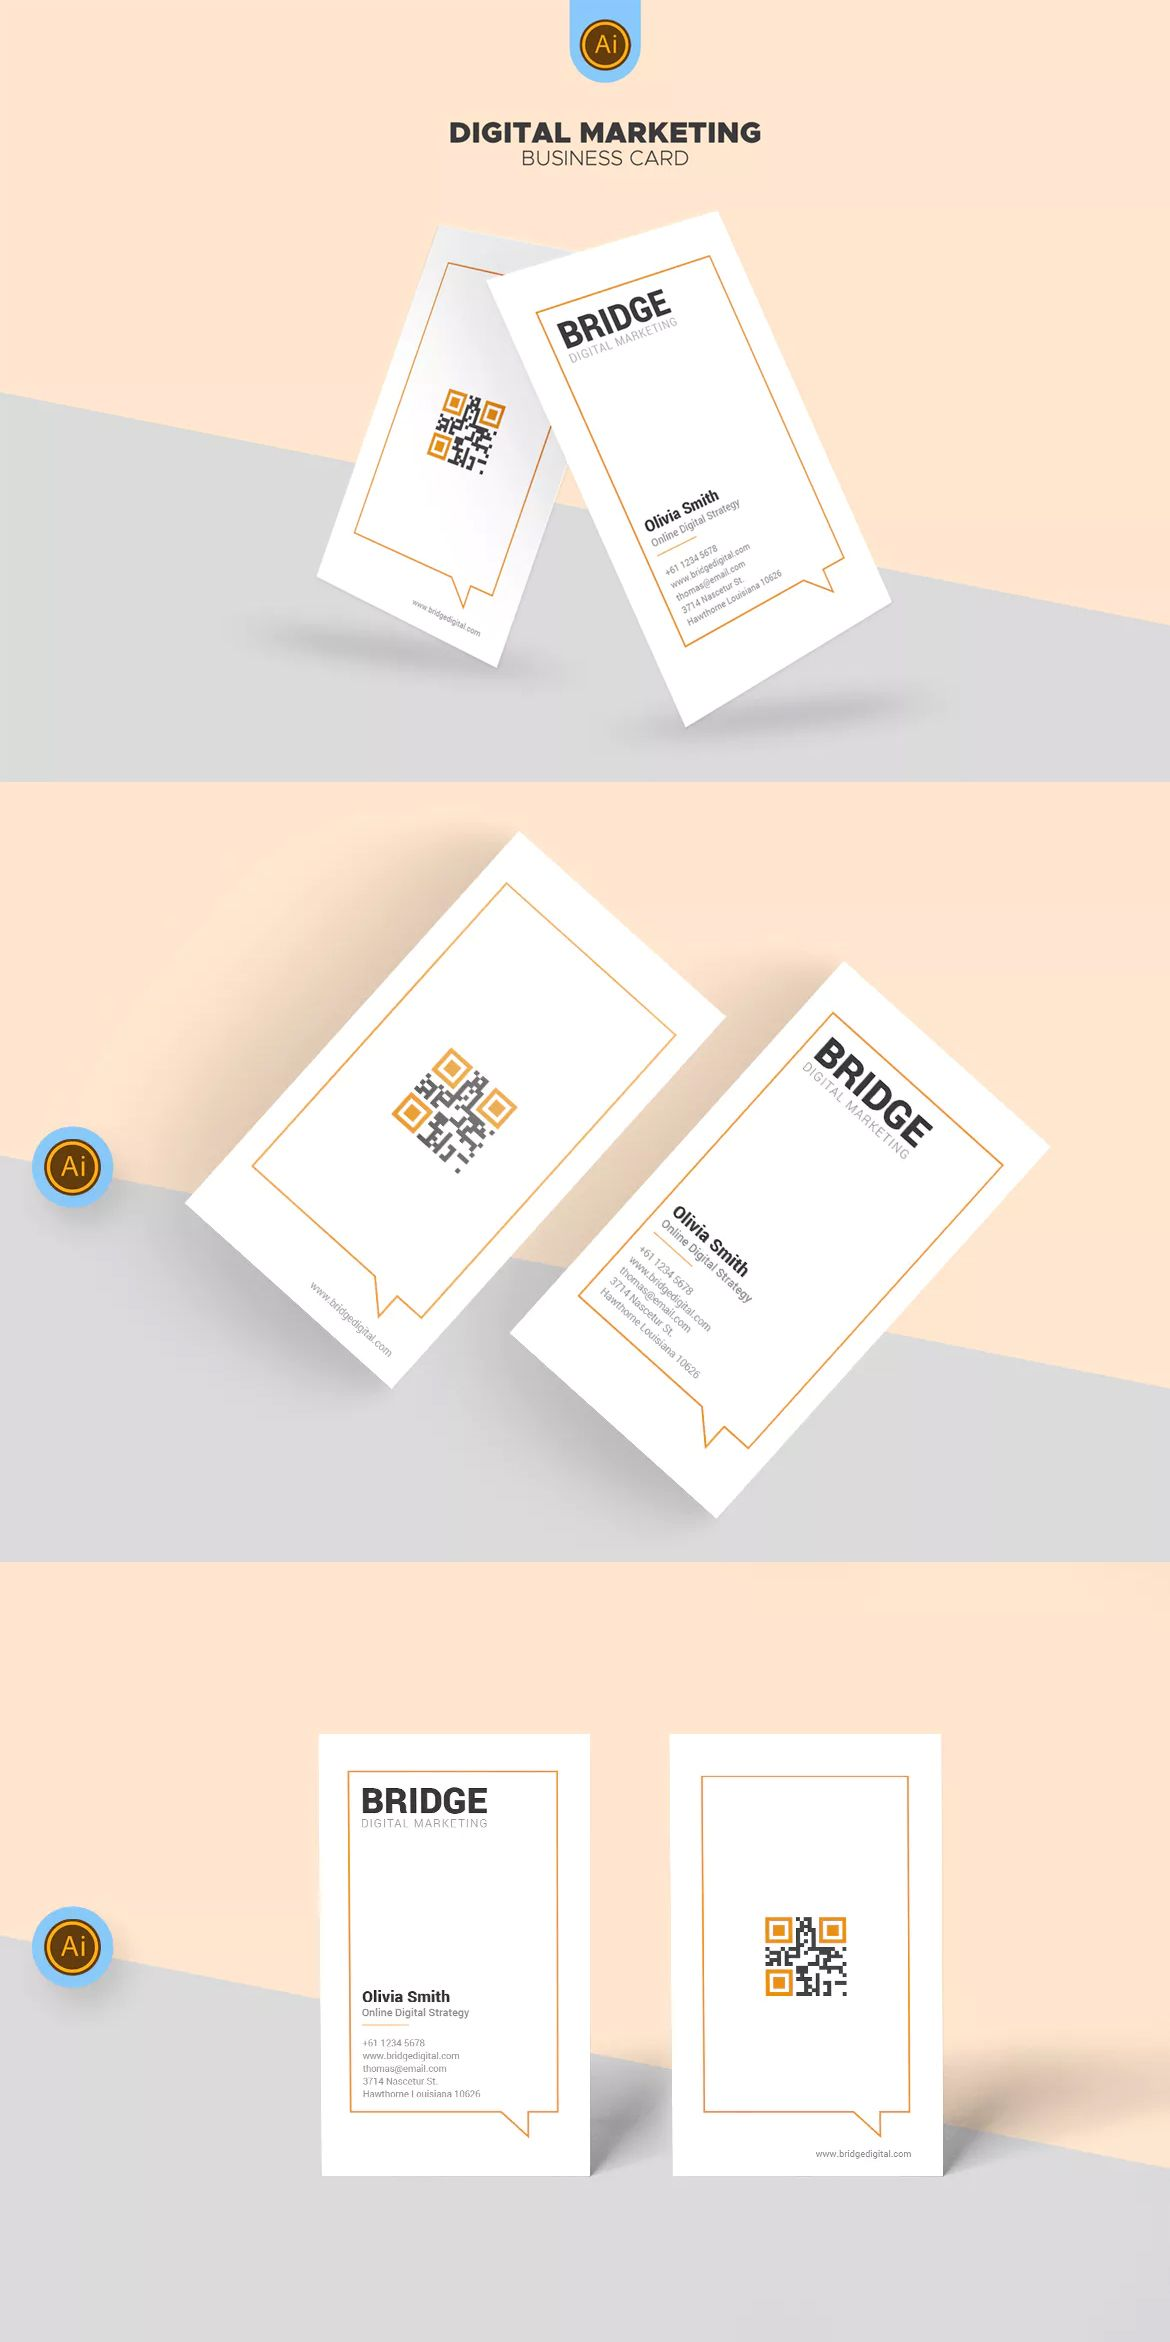 Bridge digital marketing business card template ai business card bridge digital marketing business card template ai accmission Choice Image